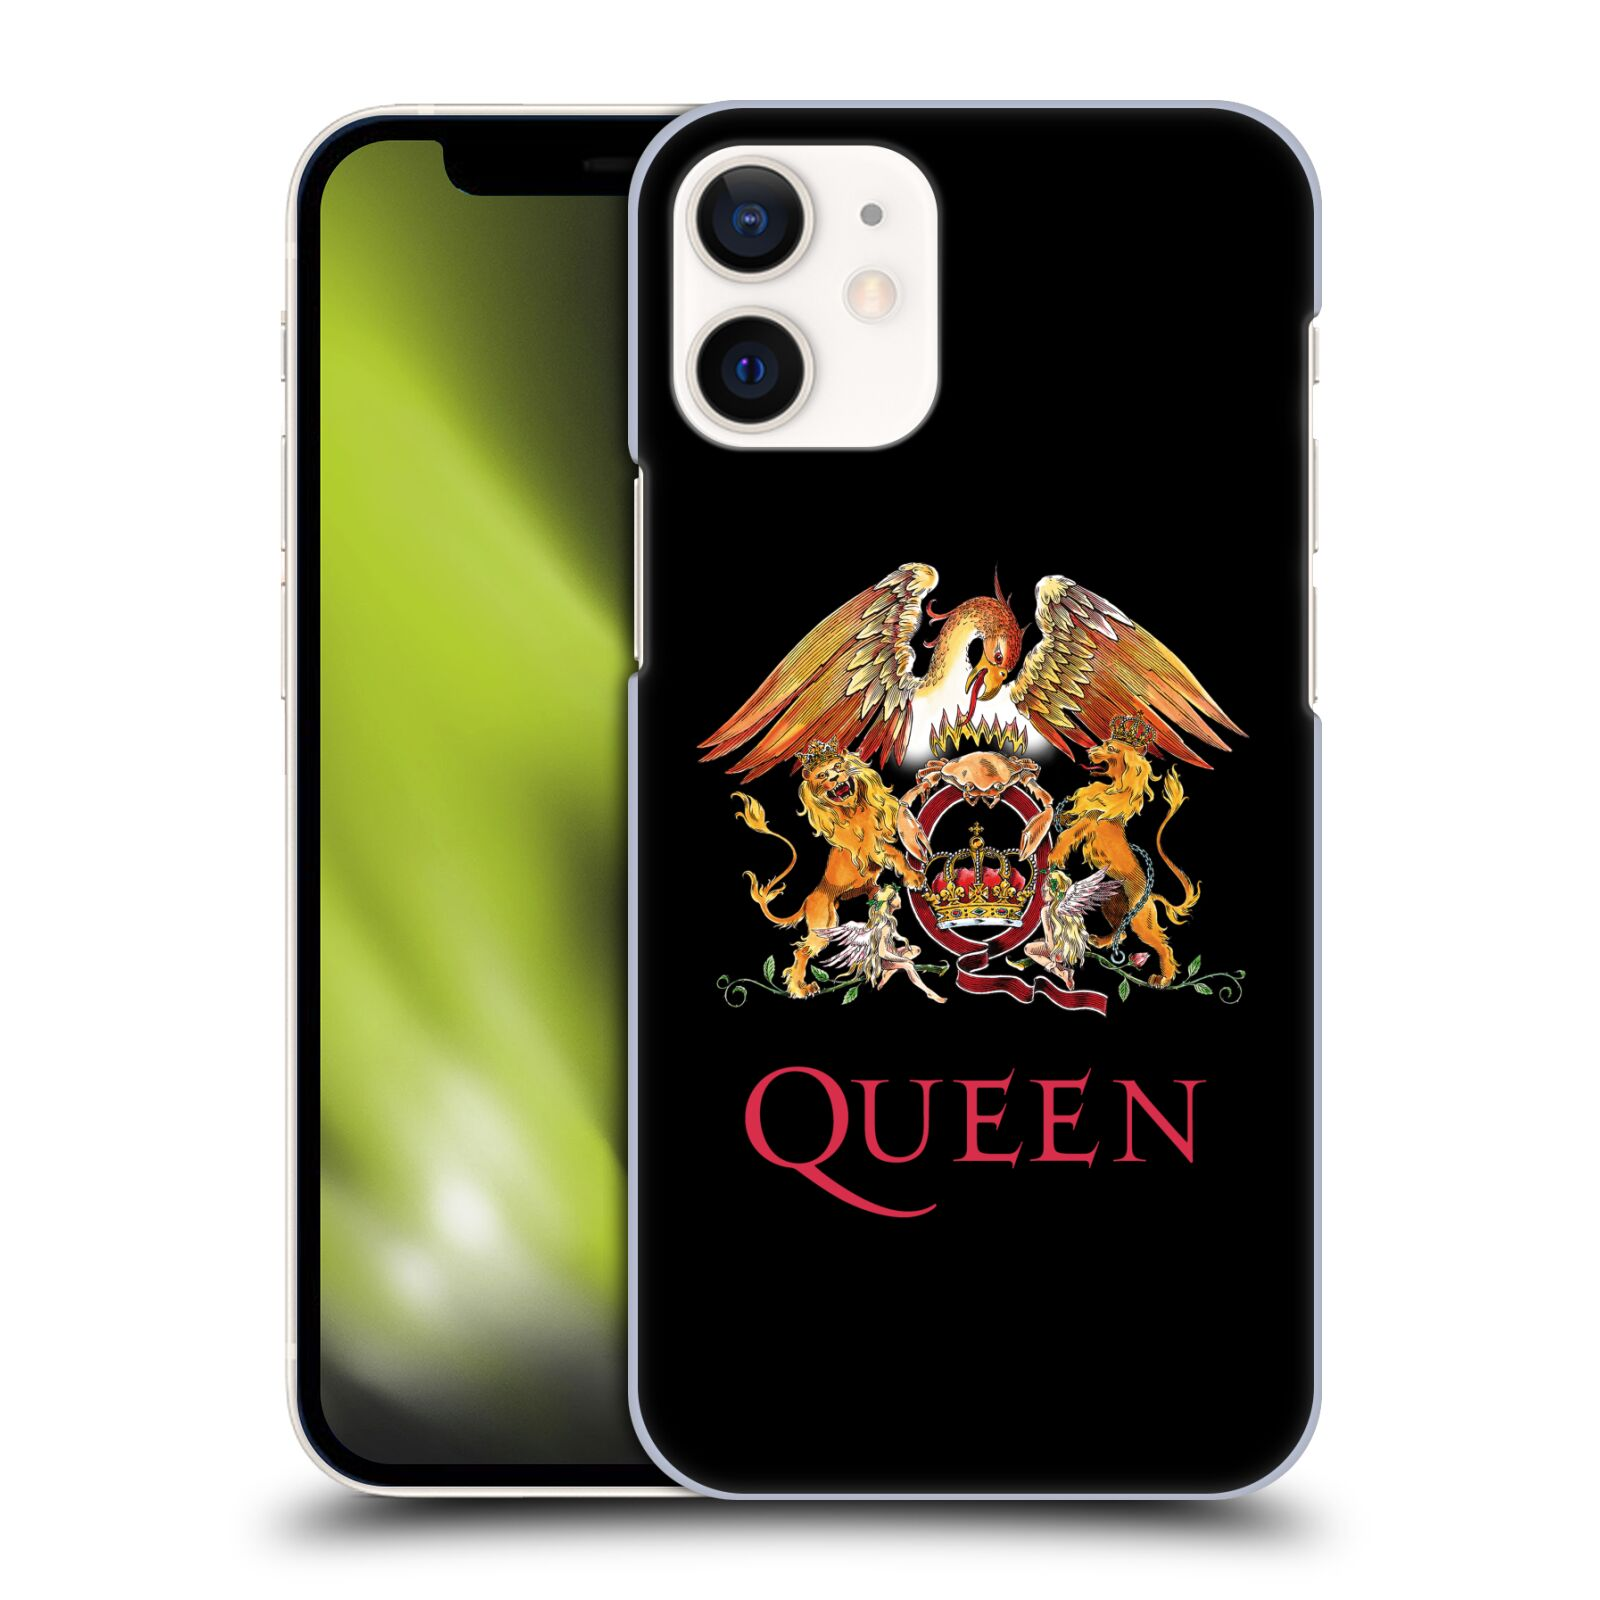 Plastové pouzdro na mobil Apple iPhone 12 Mini - Head Case - Queen - Logo